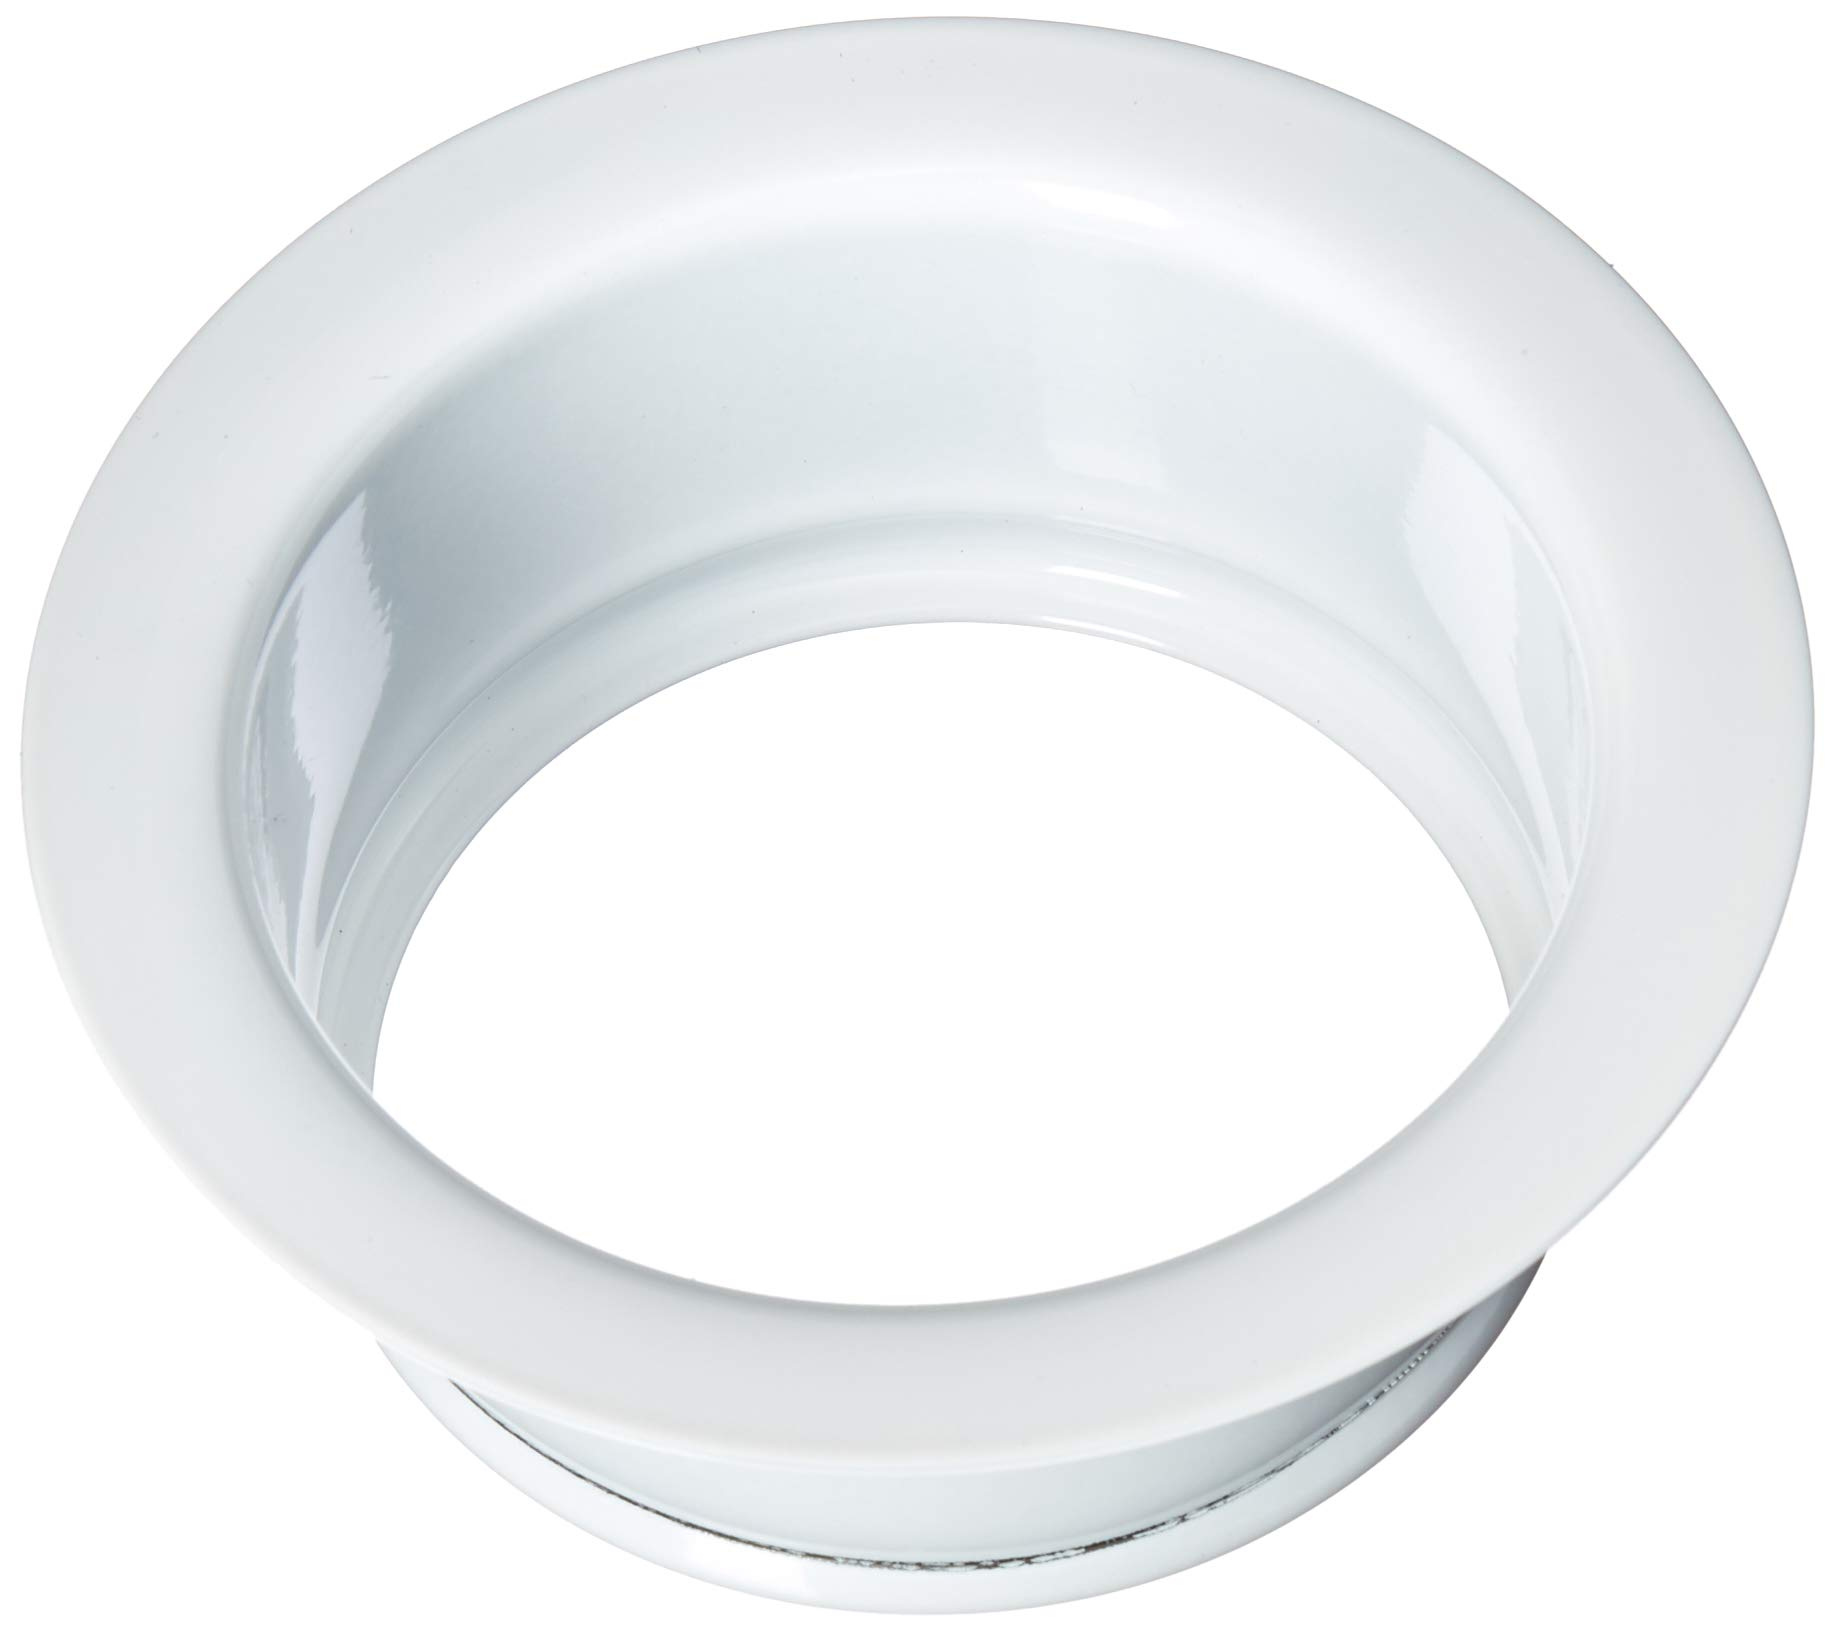 Rohl 743WH Disposal Escutcheon, White by Rohl (Image #1)